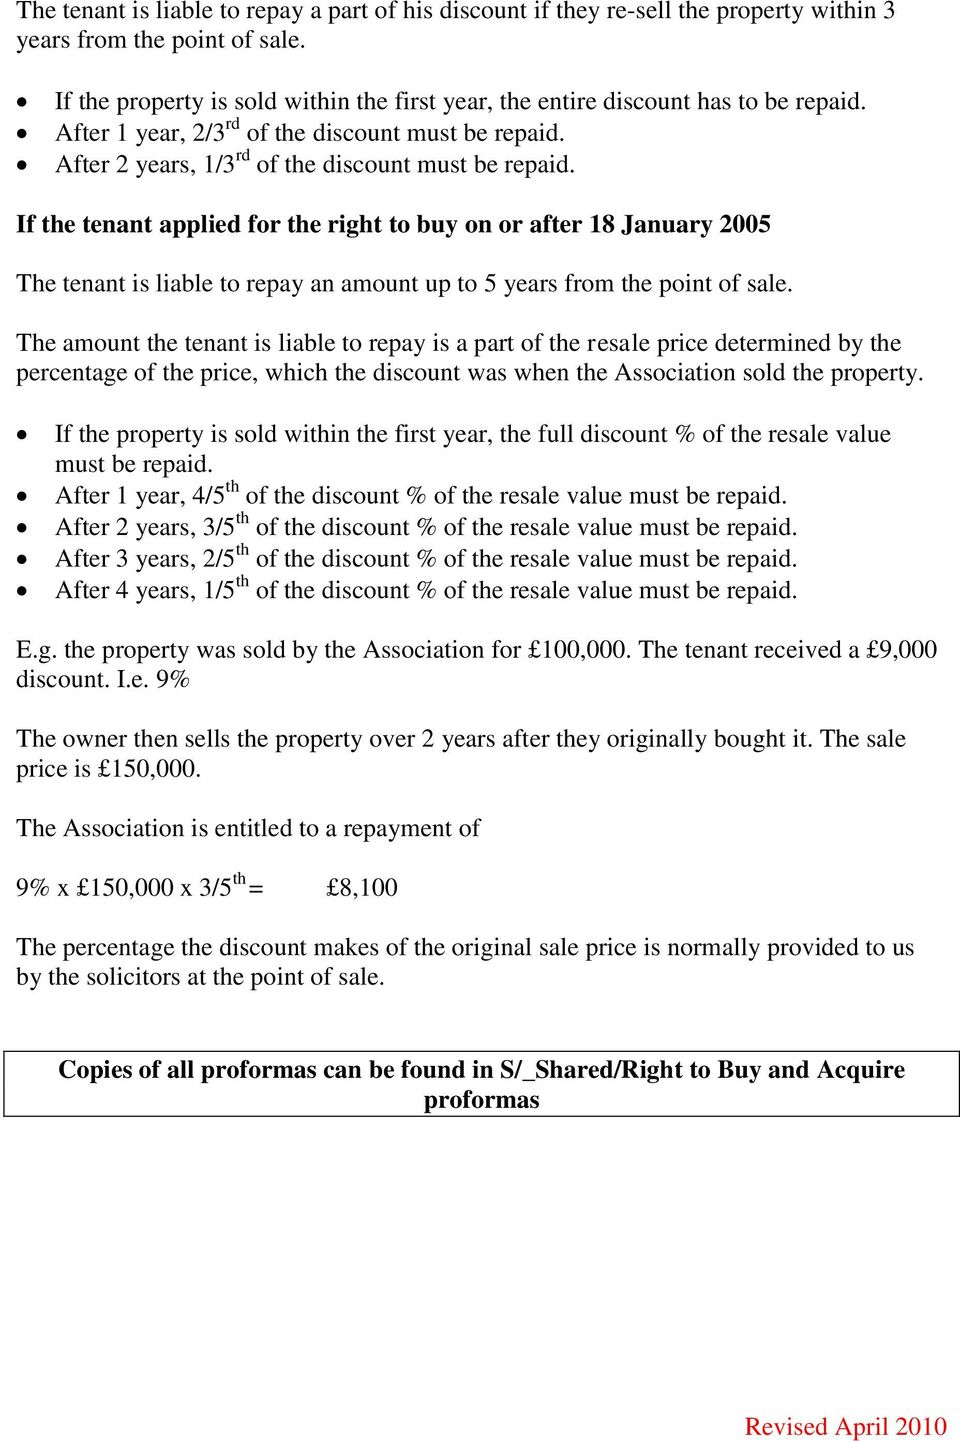 If the tenant applied for the right to buy on or after 18 January 2005 The tenant is liable to repay an amount up to 5 years from the point of sale.